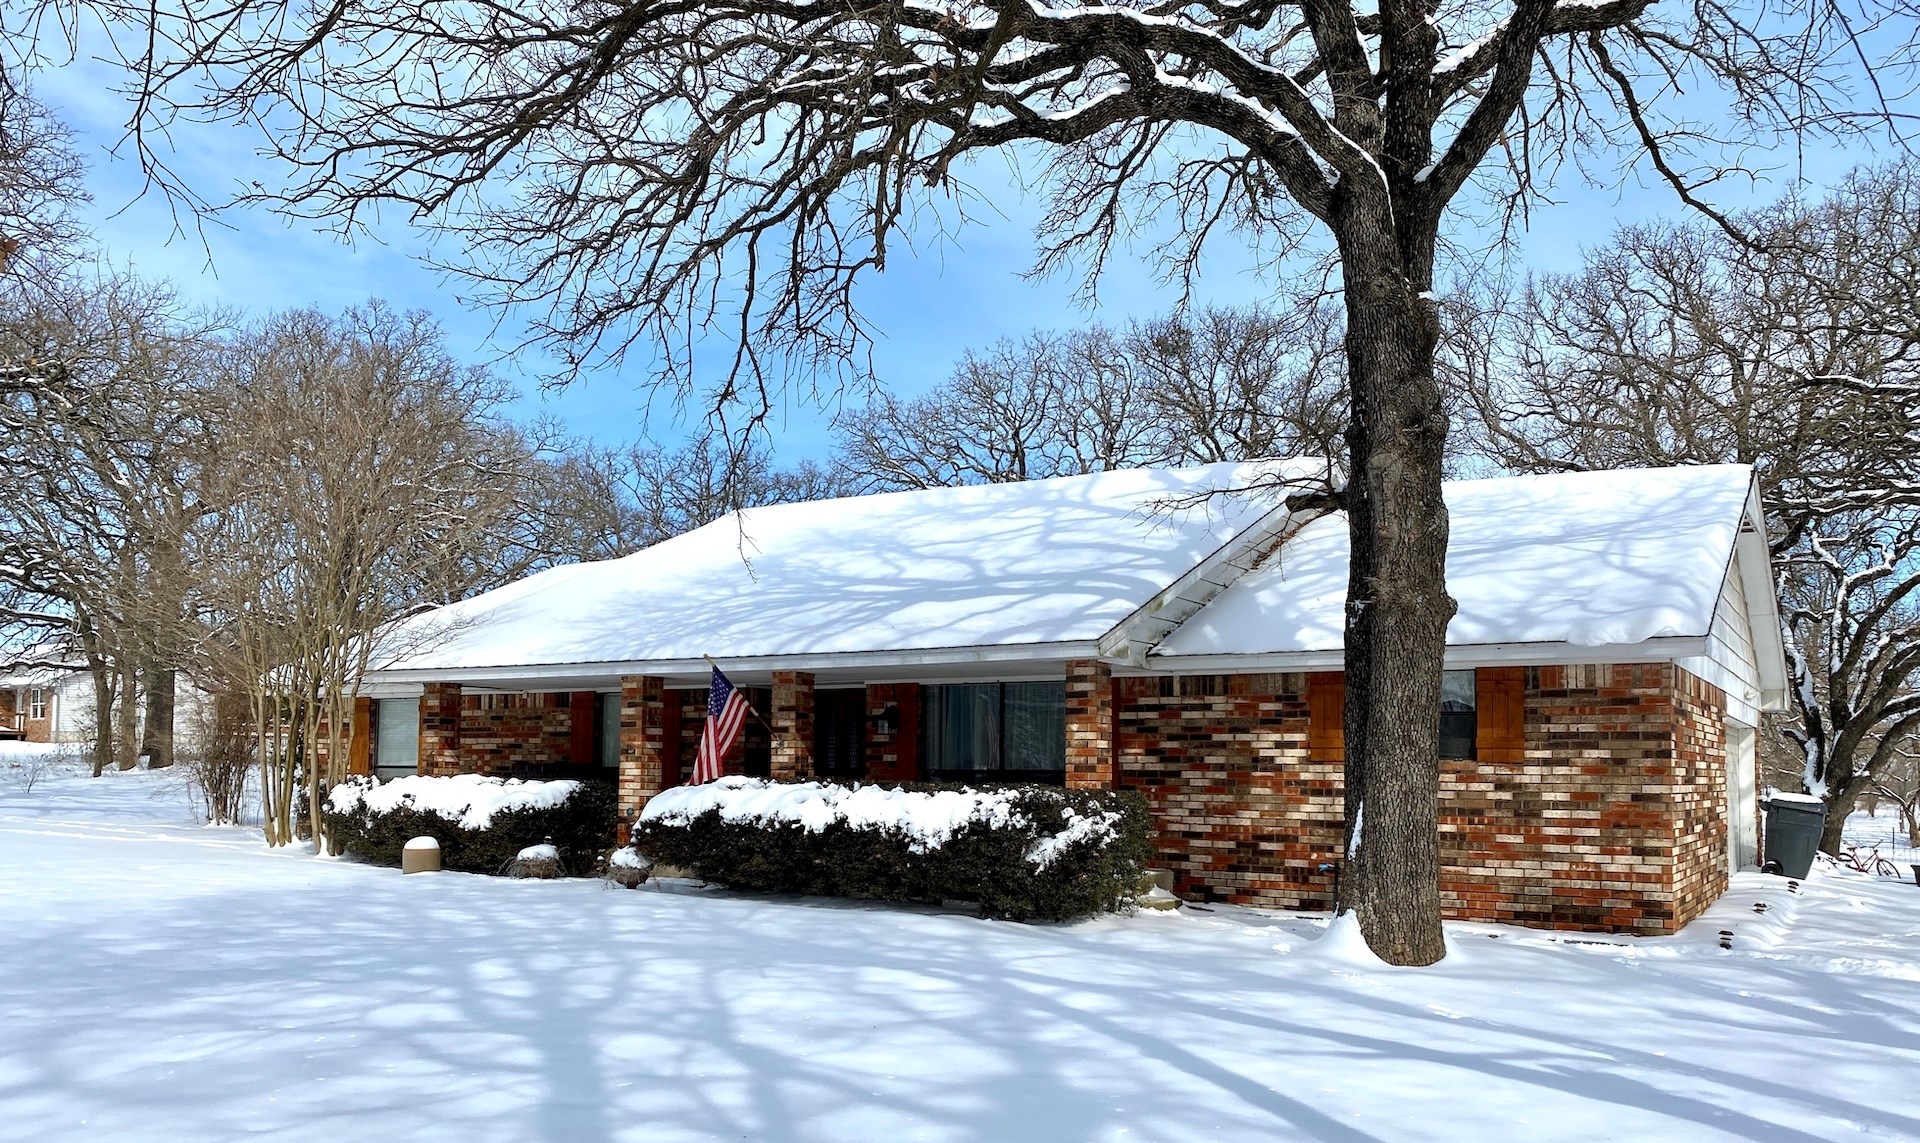 SOUTHERN OKLAHOMA RANCH STYLE HOME ON 5 ACRES-ARDMORE, OK